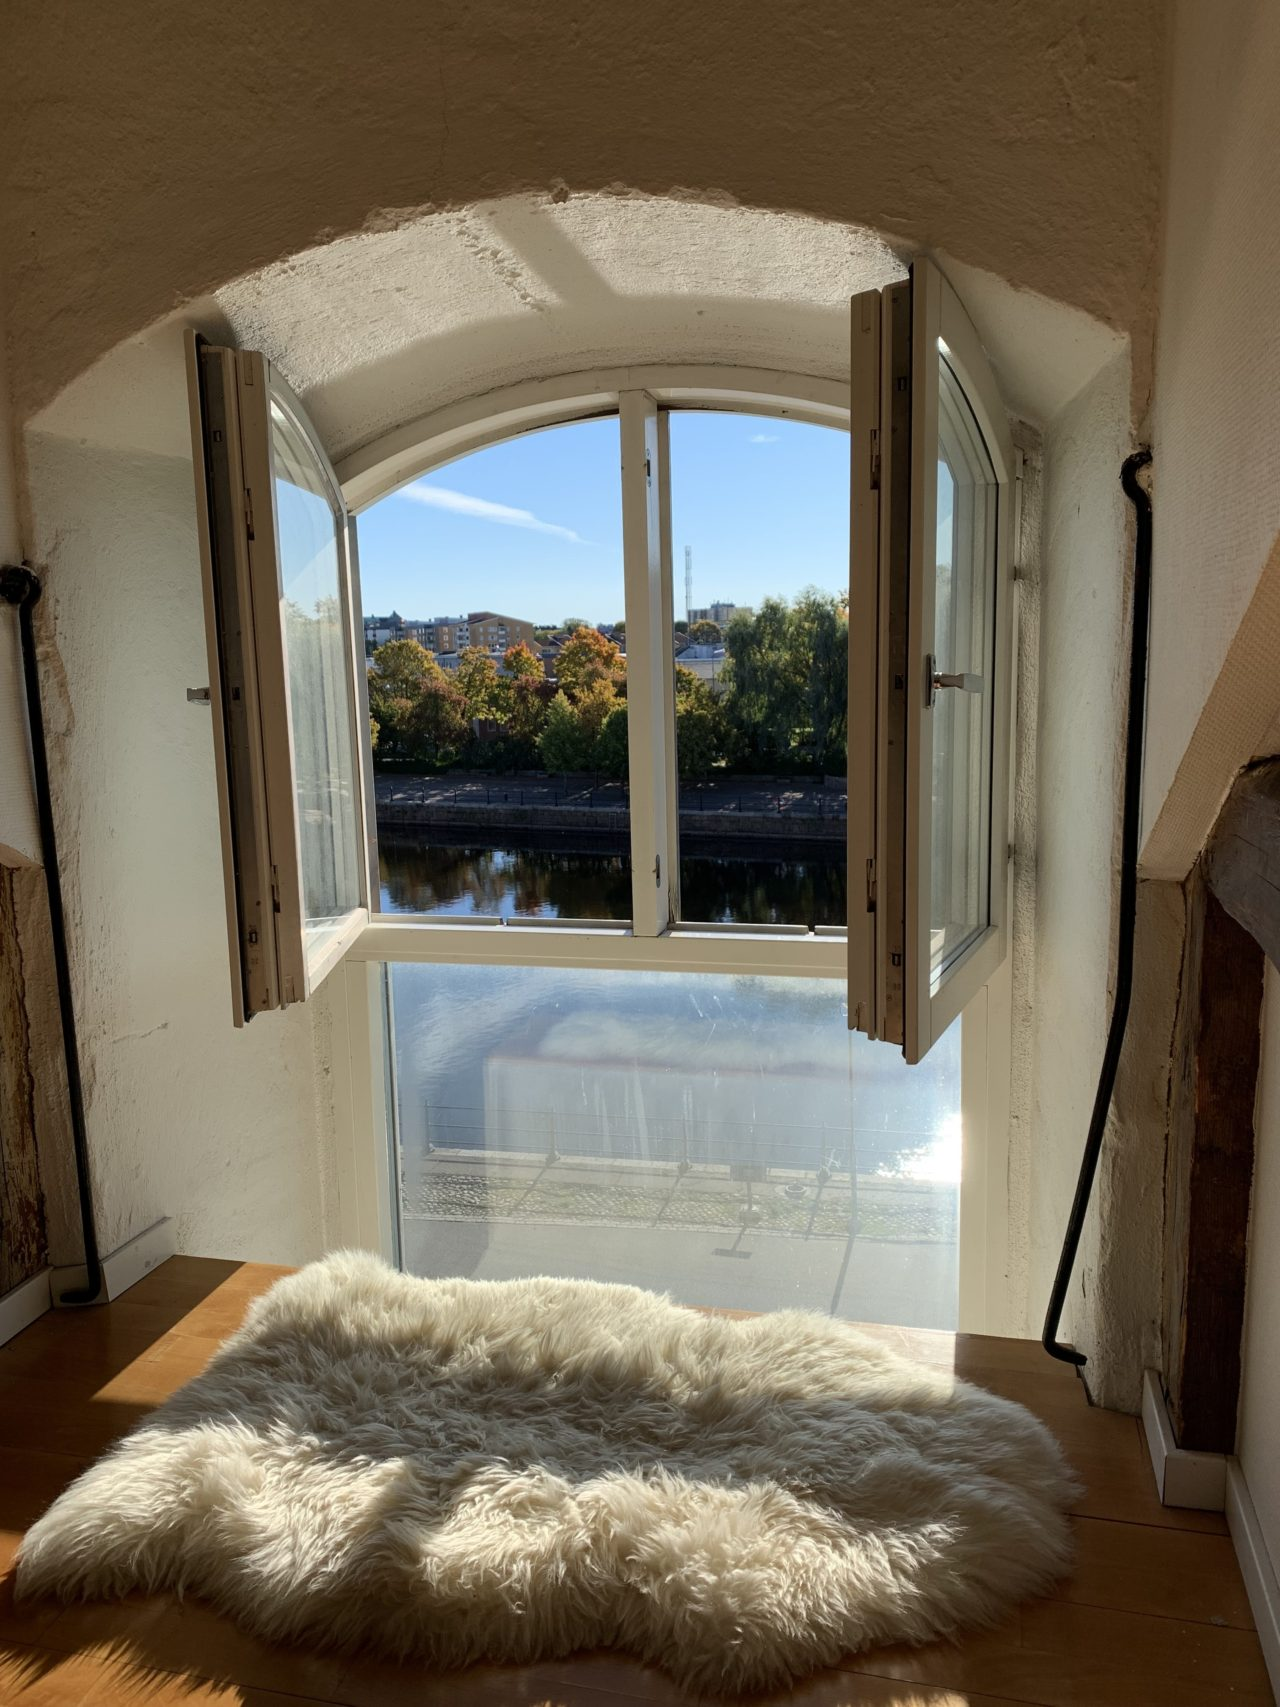 Open Window With Sheep Fur On Summer Day